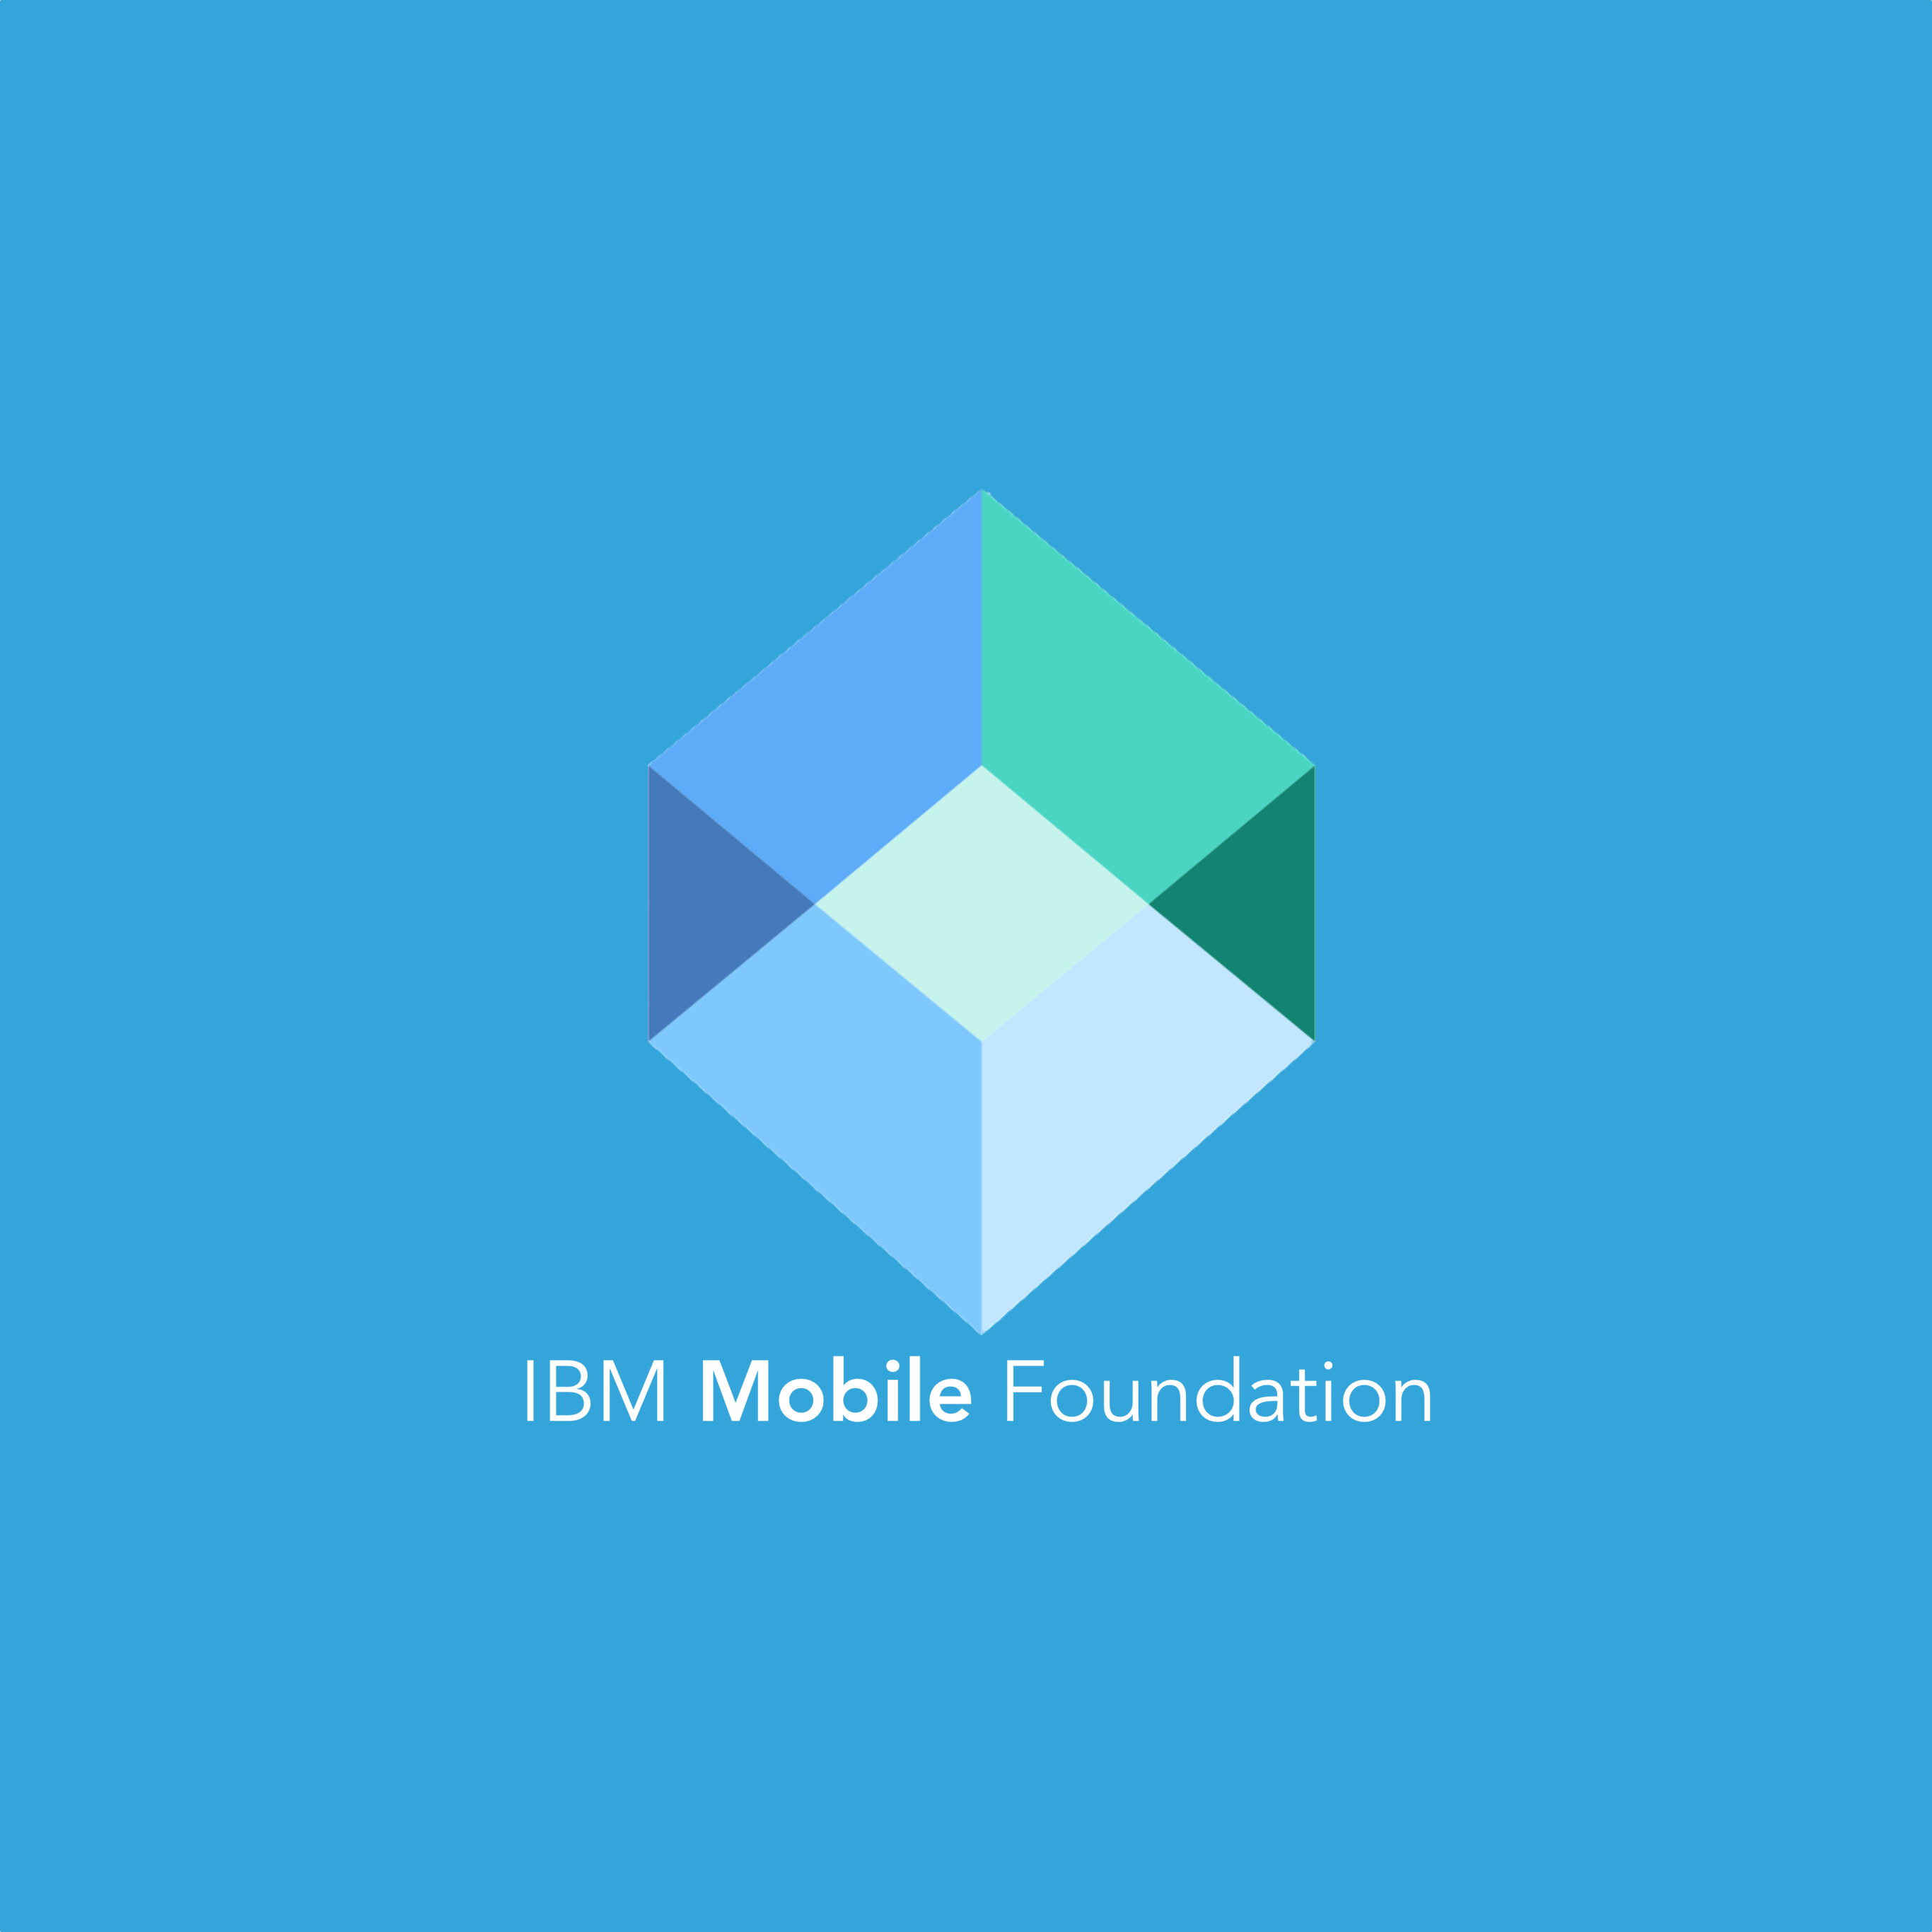 Creating an Ionic 3/Mobile Foundation 8 App: The R in cRud